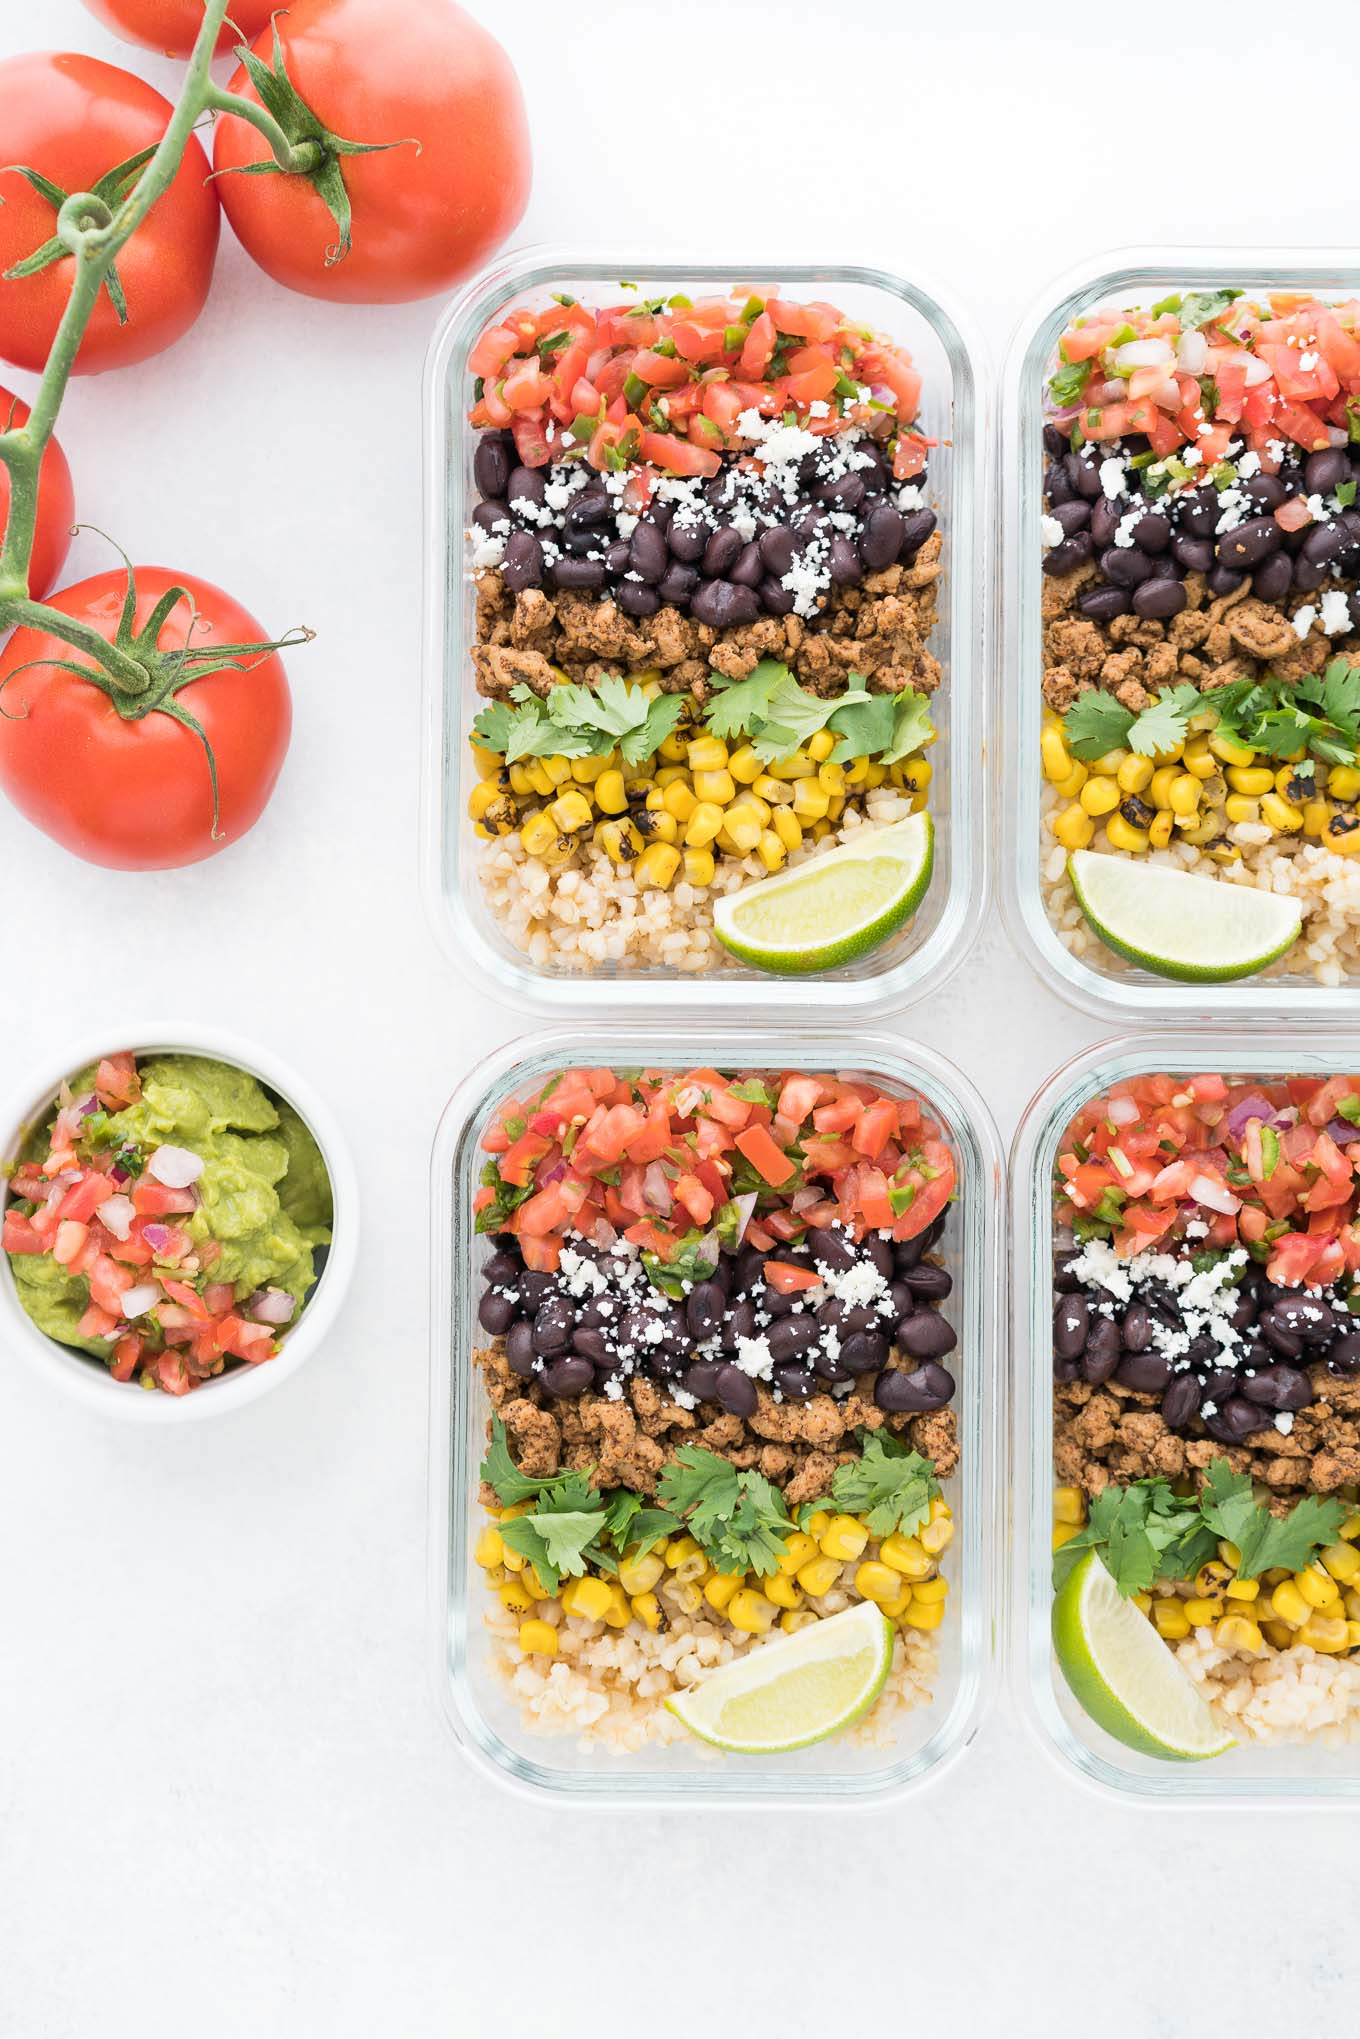 Meal Prep Burrito Bowls with Guacamole Dish and Tomatoes